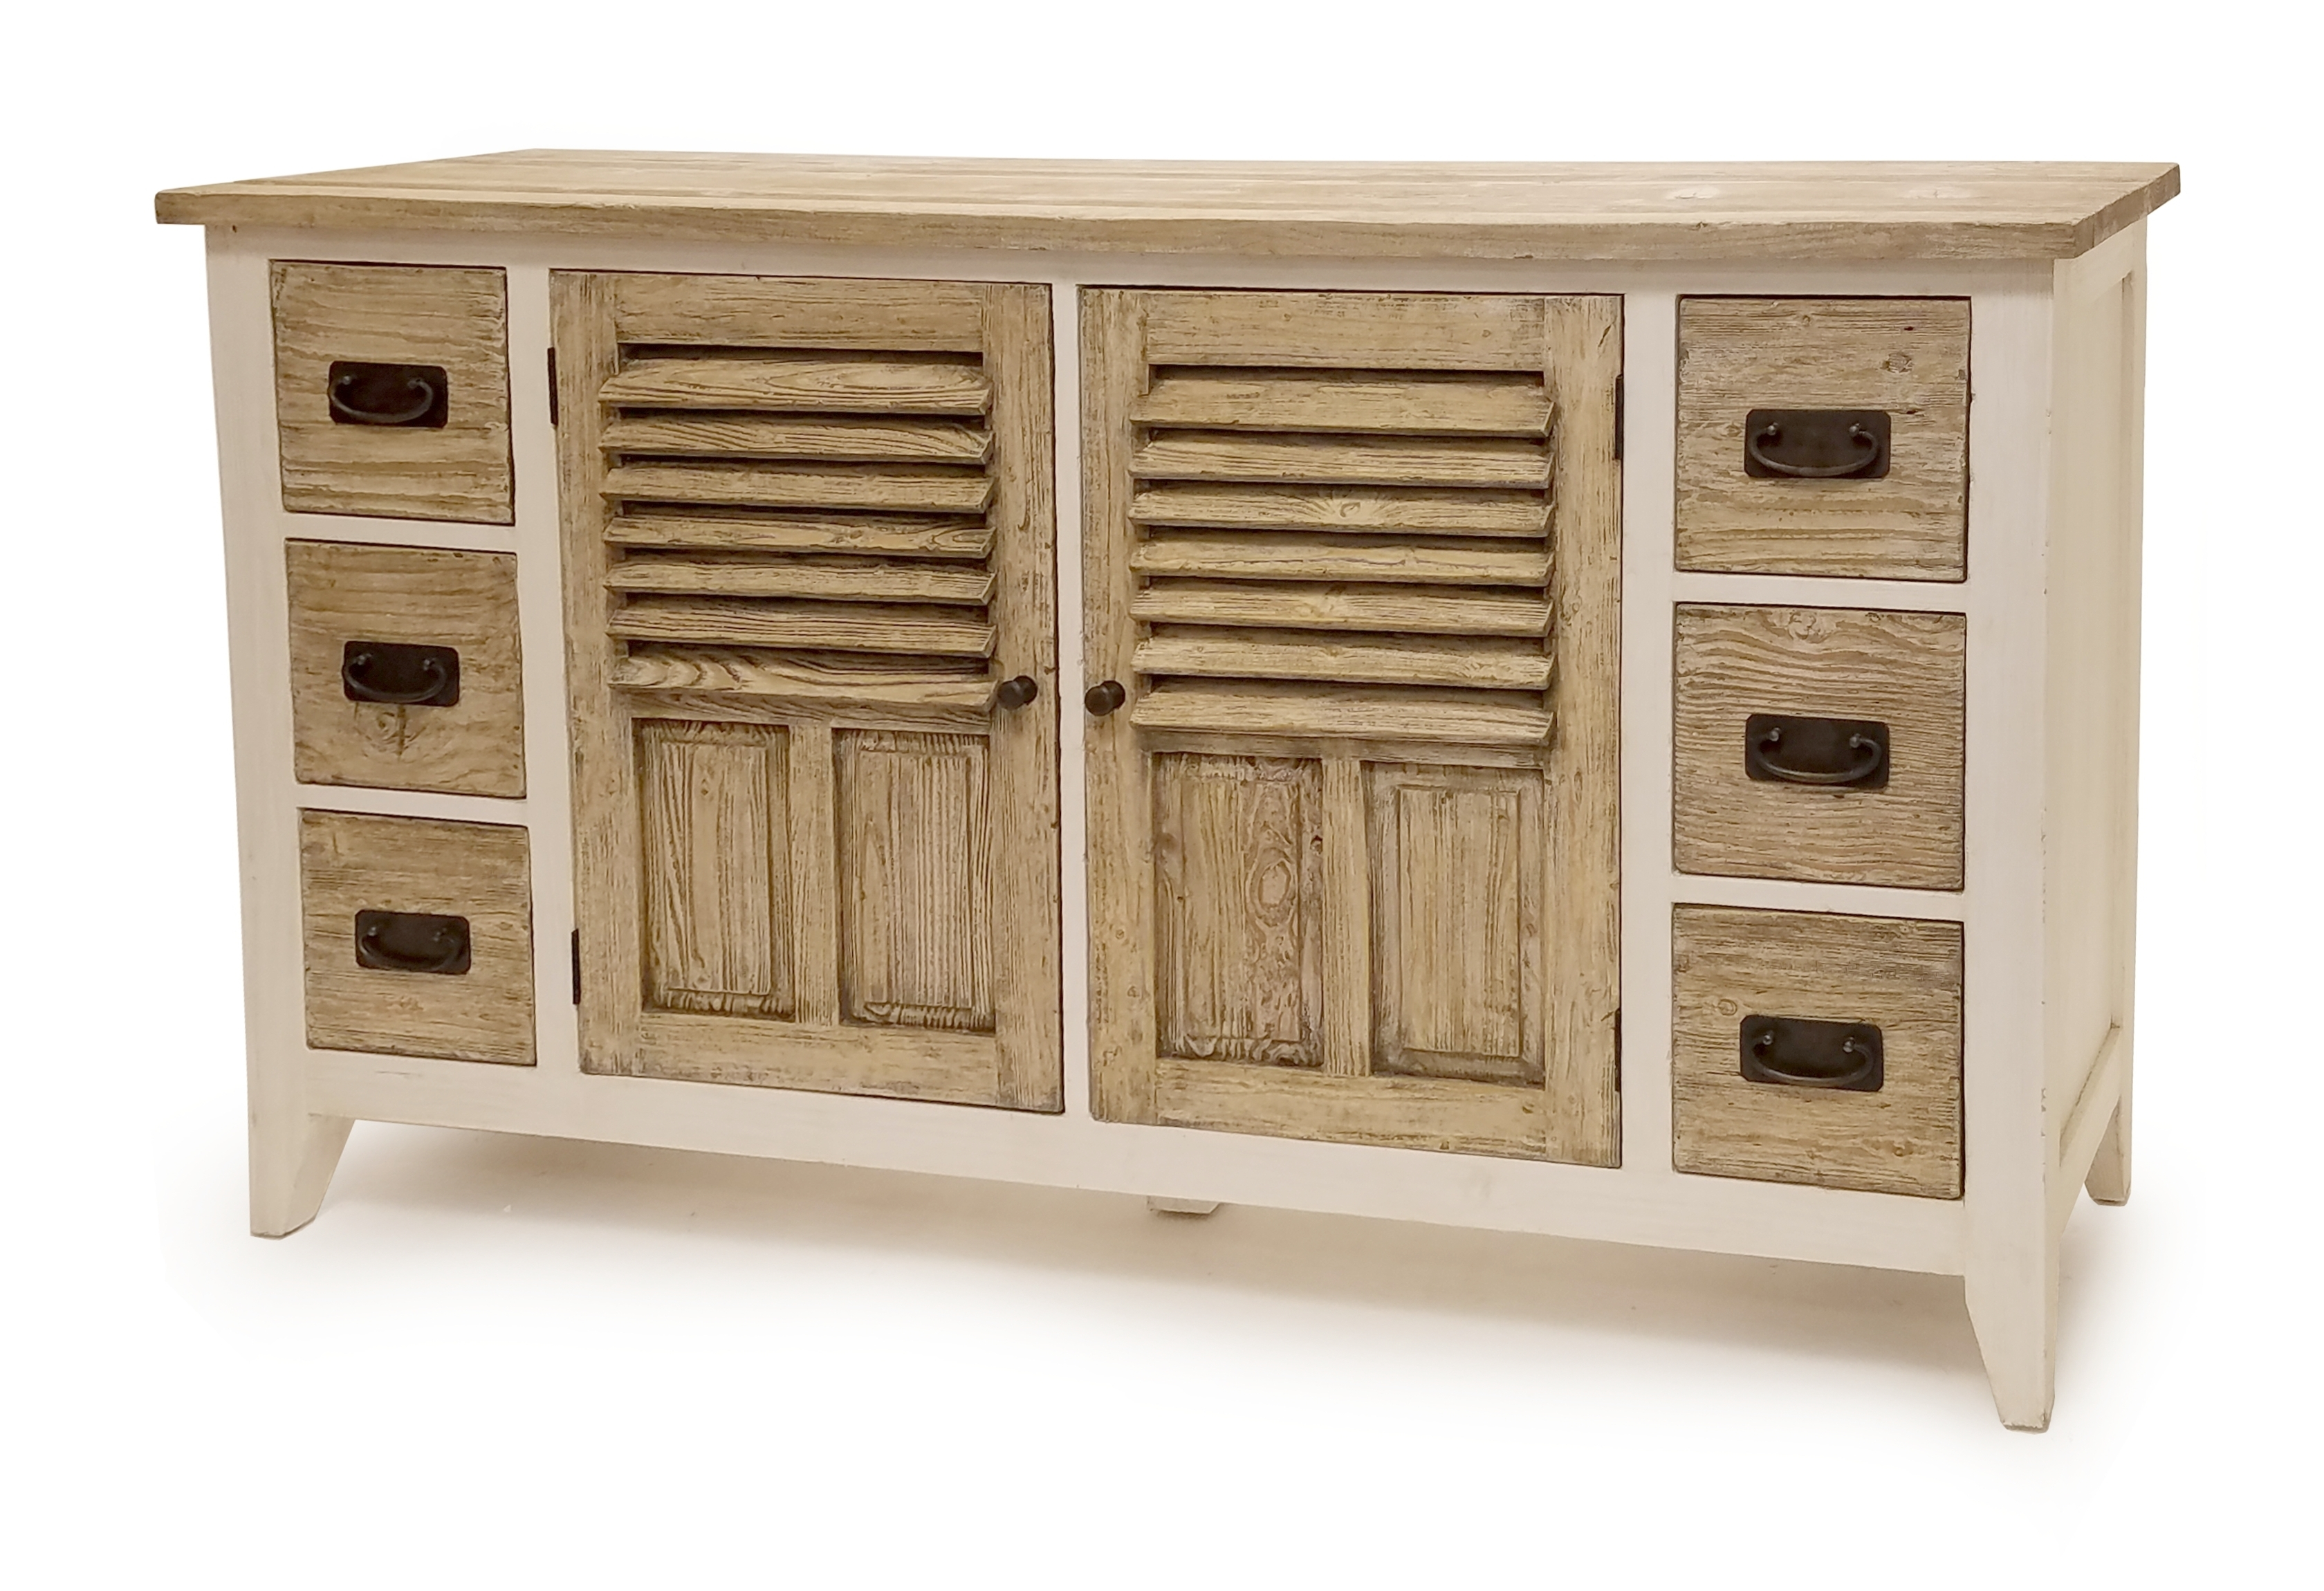 Consoles & Cabinets | Redbarn Furniture Inside Most Recently Released 2 Door/2 Drawer Cast Jali Sideboards (View 2 of 20)